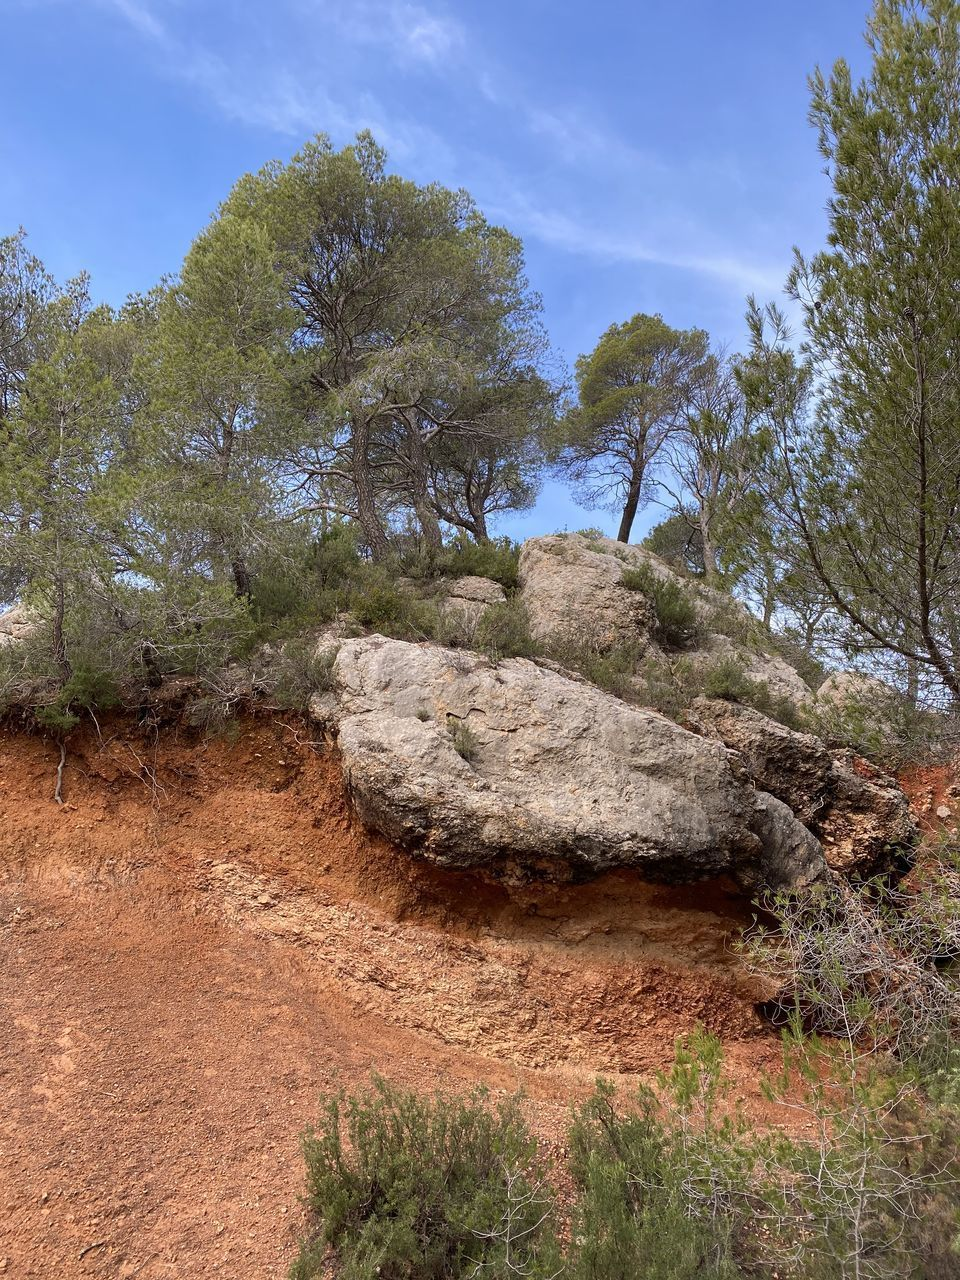 tree, plant, land, growth, nature, sky, rock, no people, tranquility, environment, non-urban scene, landscape, tranquil scene, beauty in nature, rock - object, solid, day, outdoors, scenics - nature, forest, sandstone